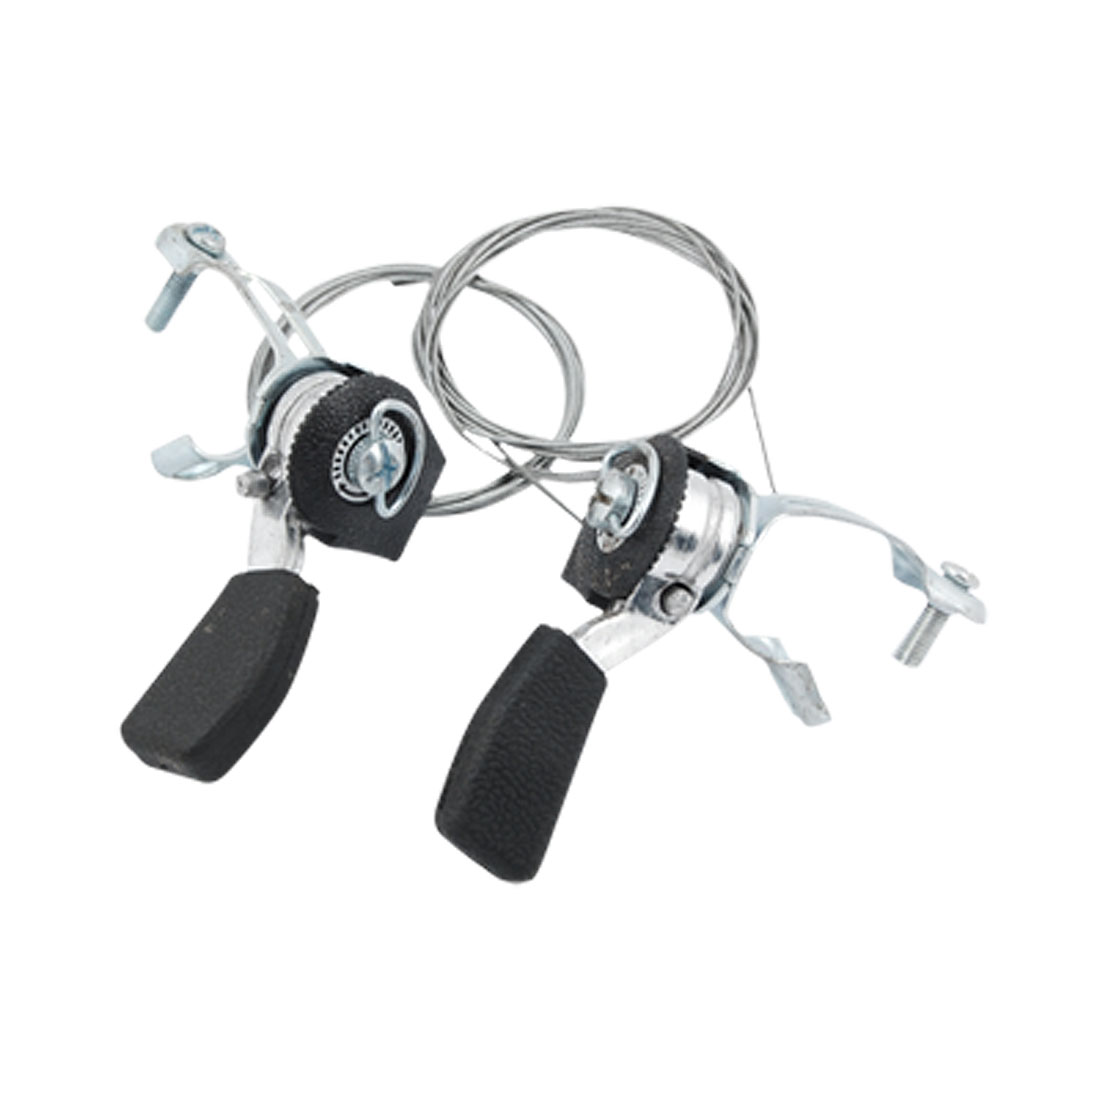 Pair Toggle Left Right Adjusting Handle for Speed Bicycle